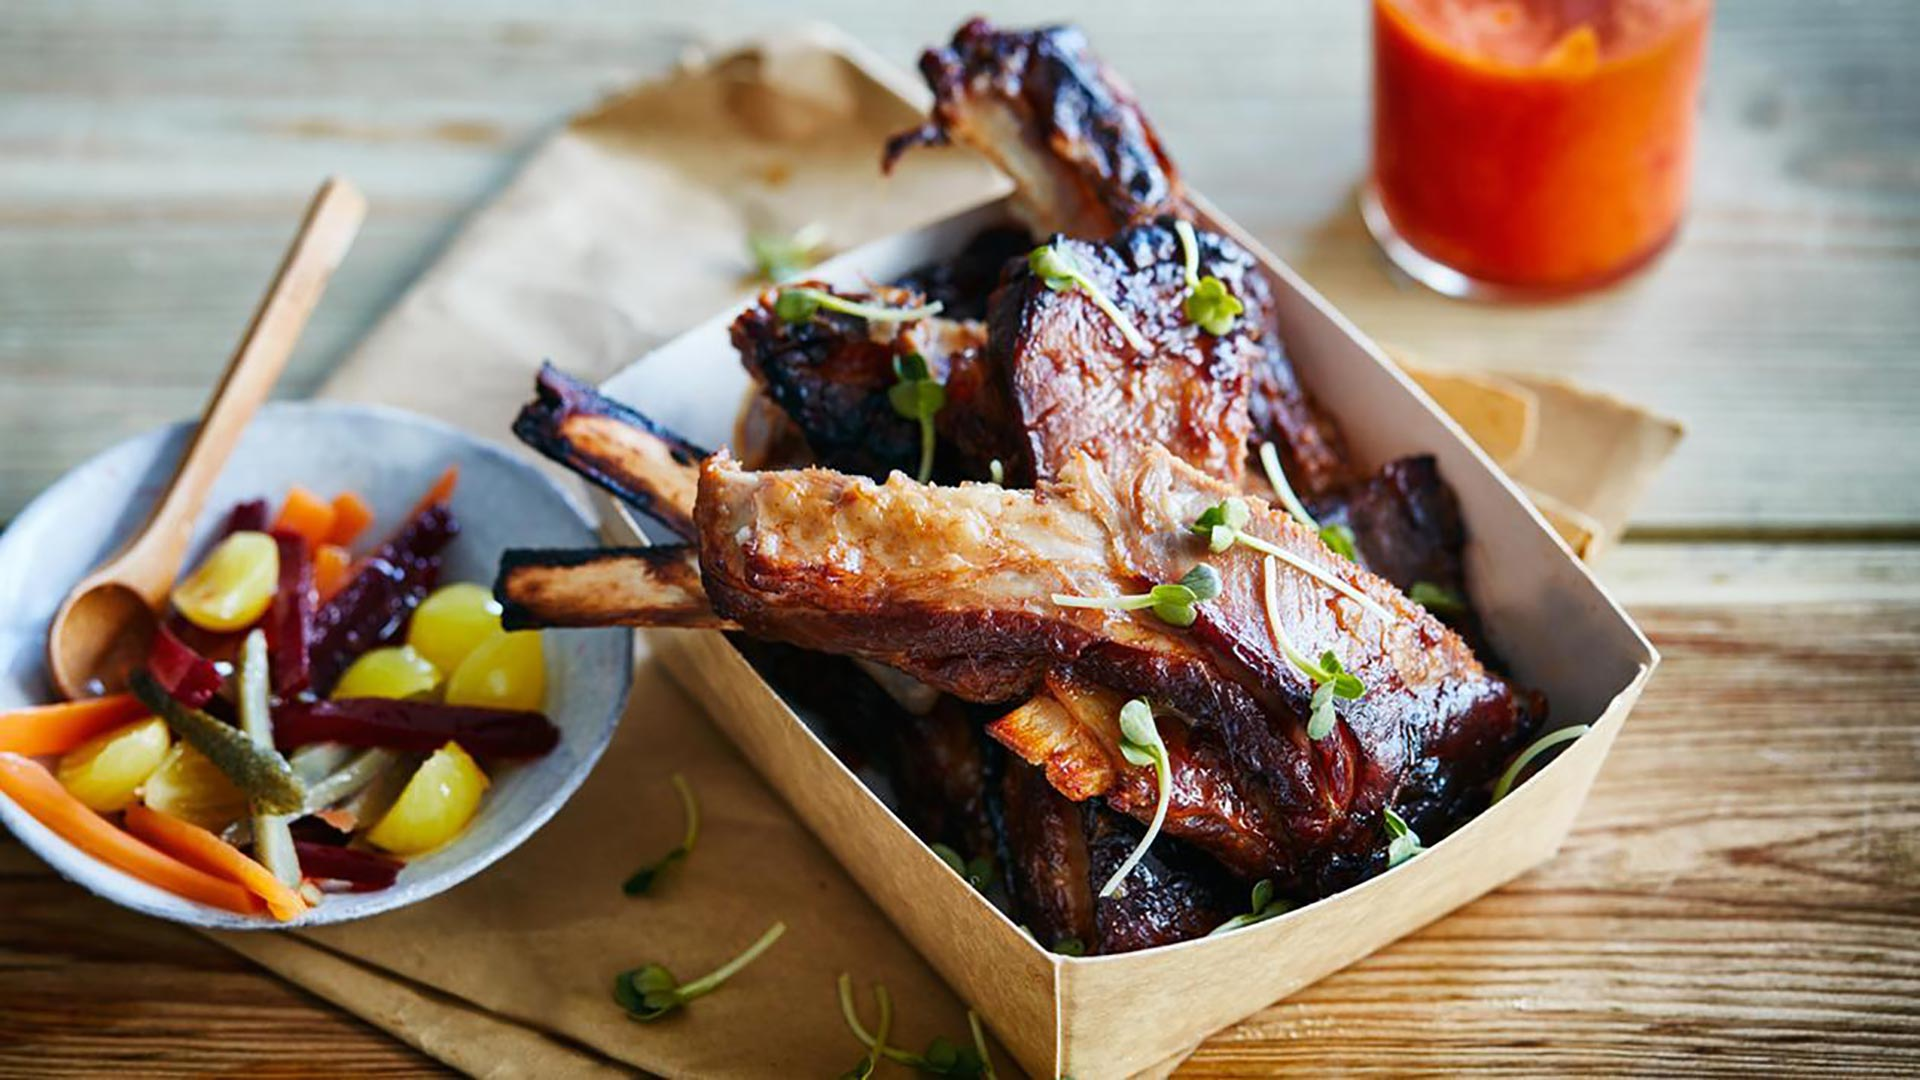 Savory ribs with thyme and chili